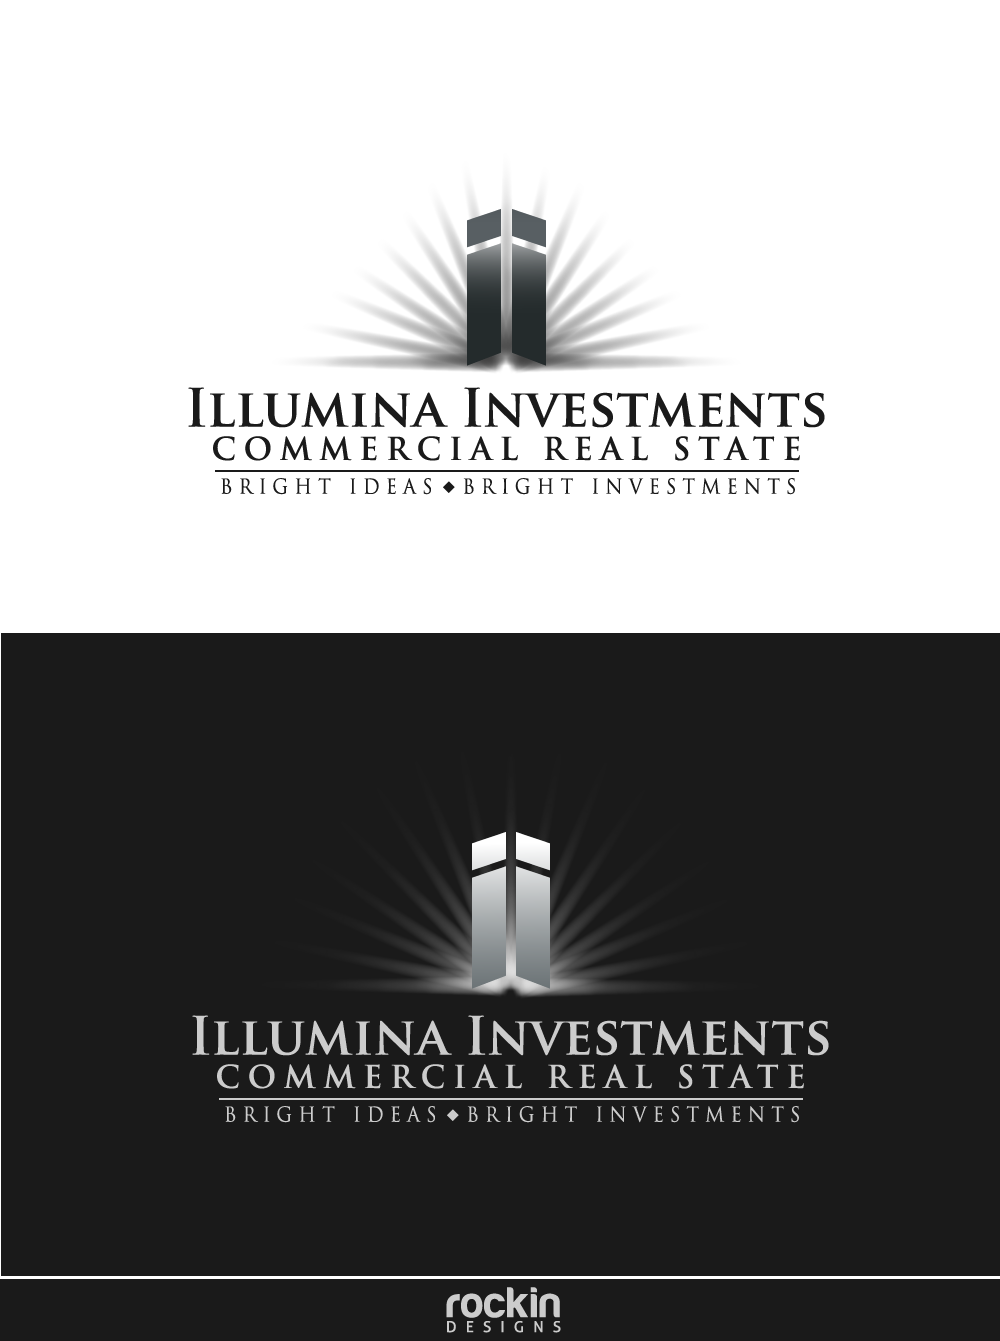 Logo Design by rockin - Entry No. 78 in the Logo Design Contest Creative Logo Design for Illumina Investments.